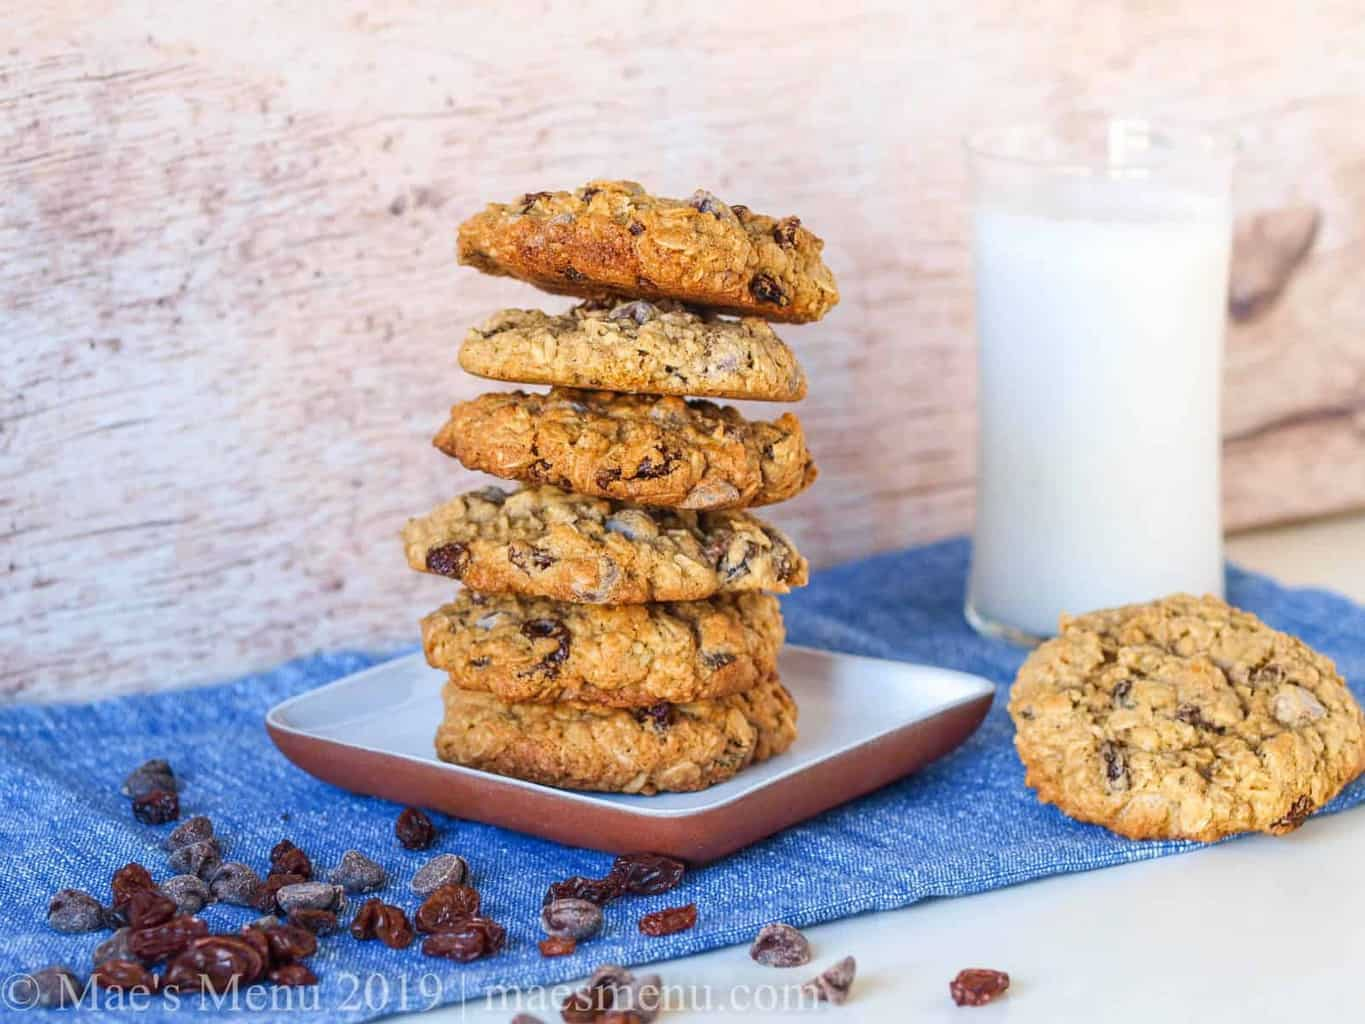 Stack of oatmeal raisin chocolate chip cookies and a glass of milk.